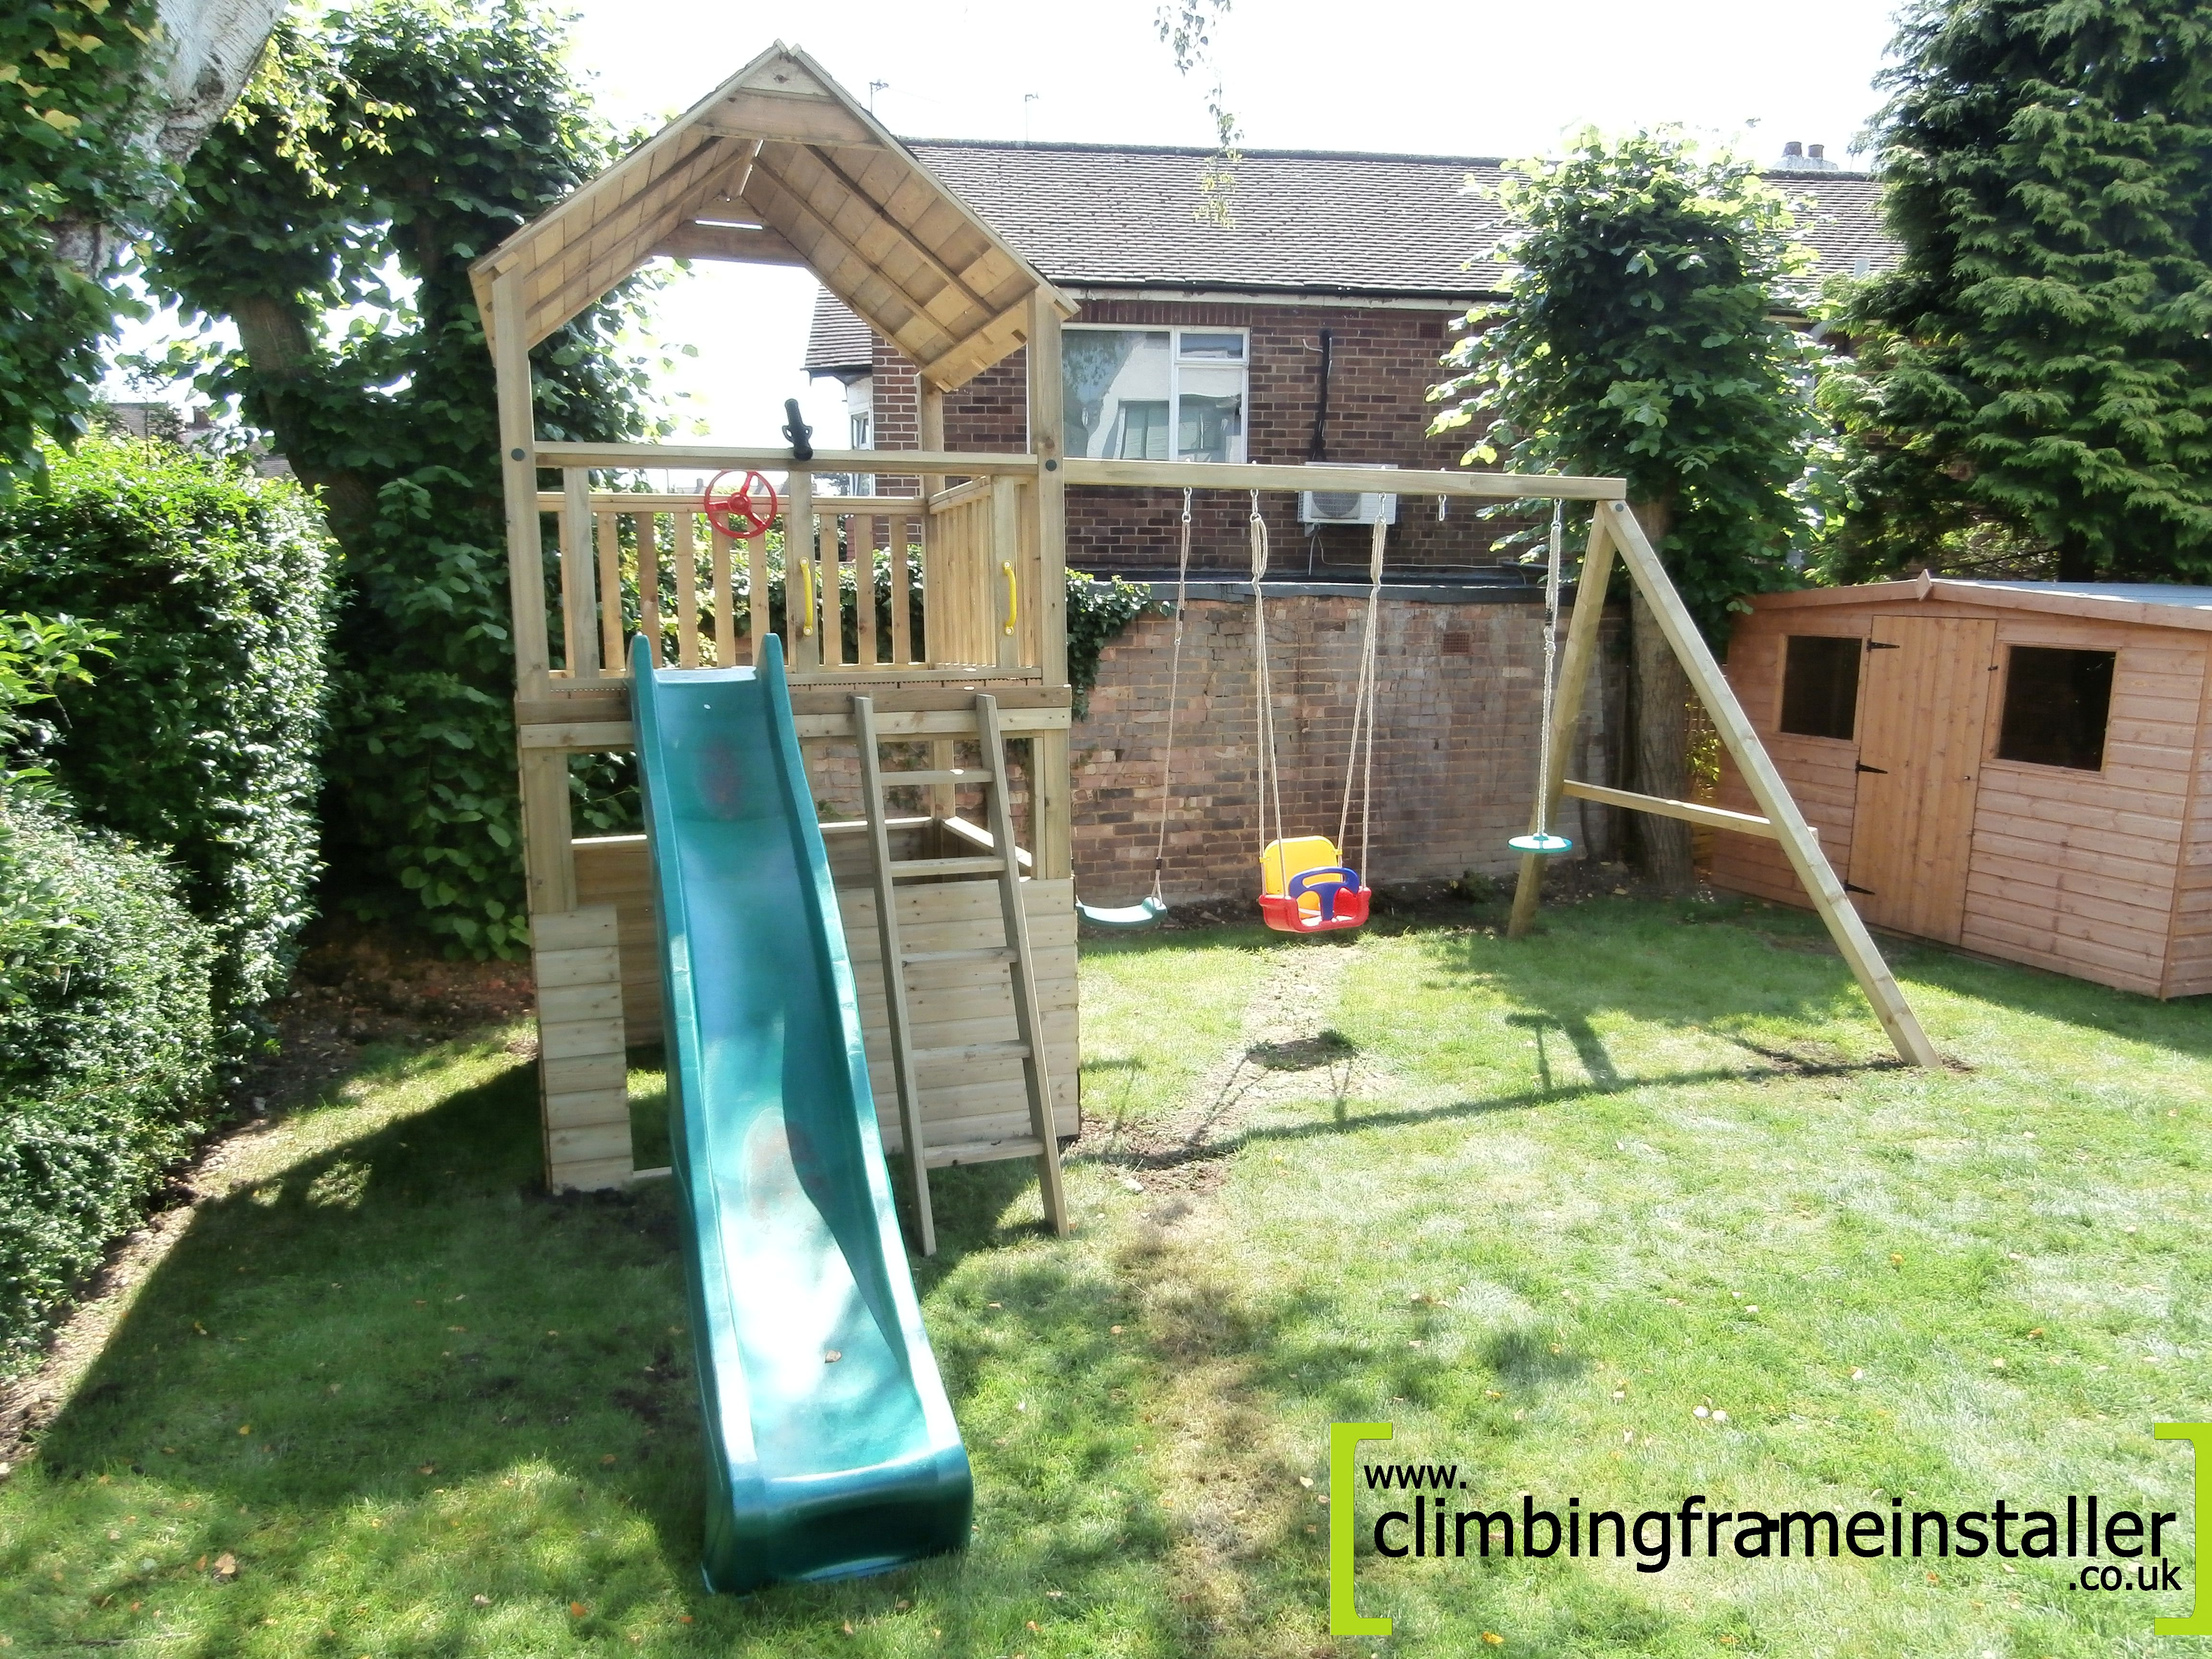 climbing frame installers climbing frame installer. Black Bedroom Furniture Sets. Home Design Ideas